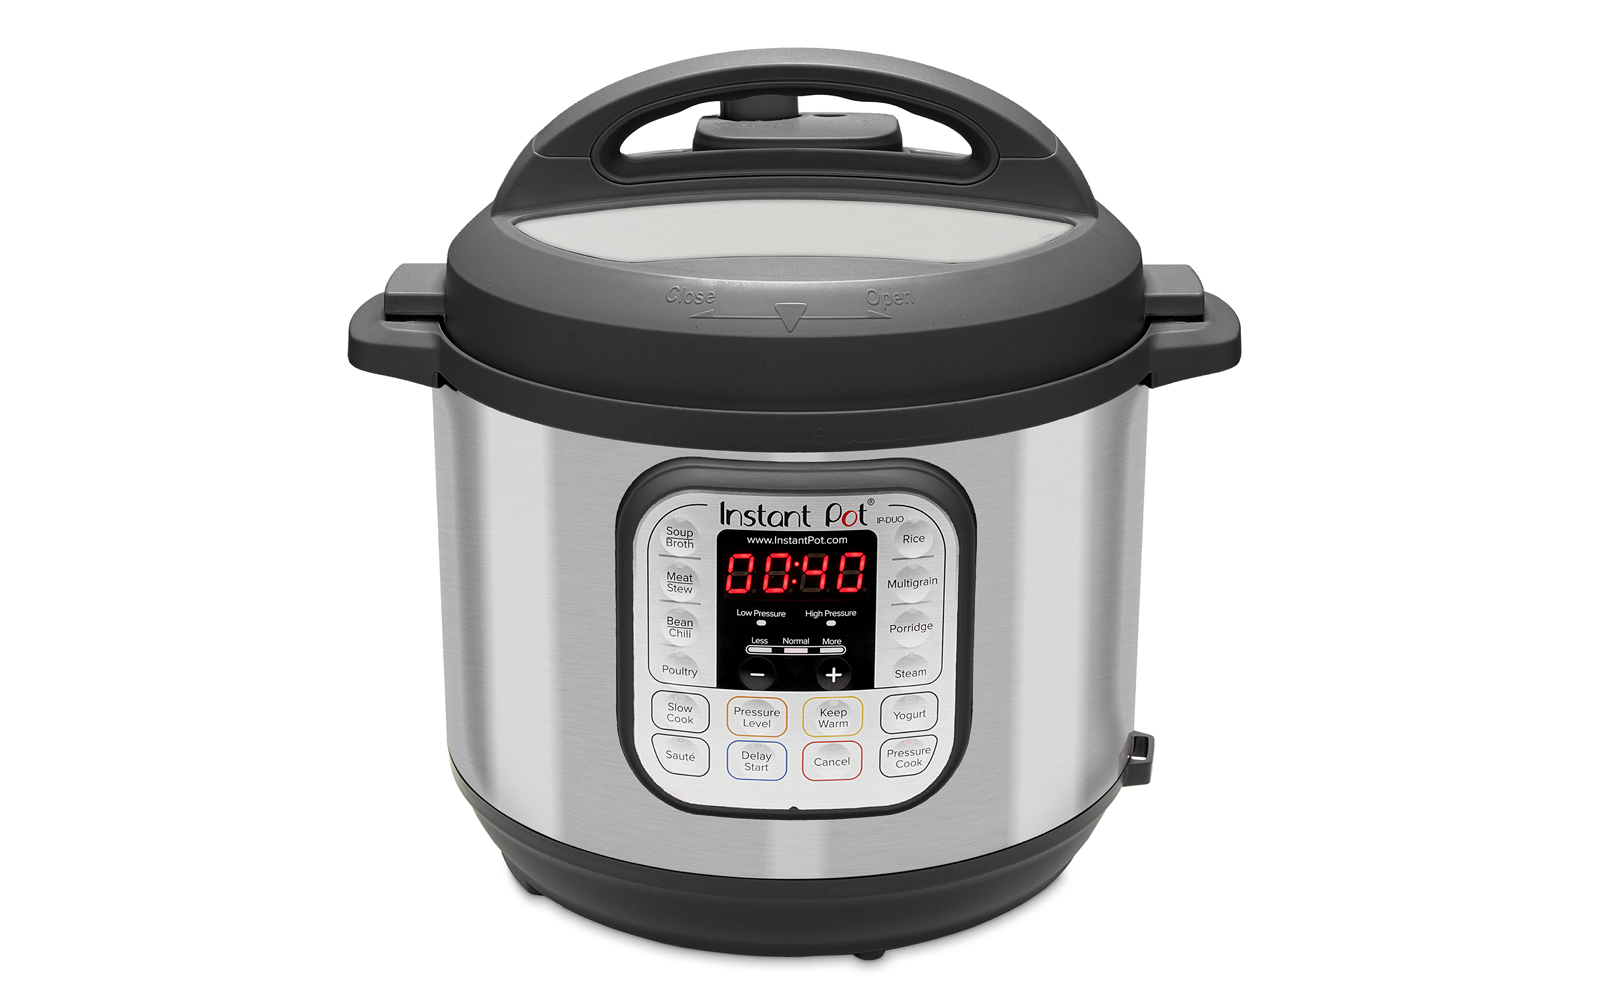 Instant Pot DUO60 6 Qt 7-in-1 Multi-Use Programmable Pressure Cooker, Slow Cooker, Rice Cooker, Sauté, Steamer, Yogurt Maker and Warmer